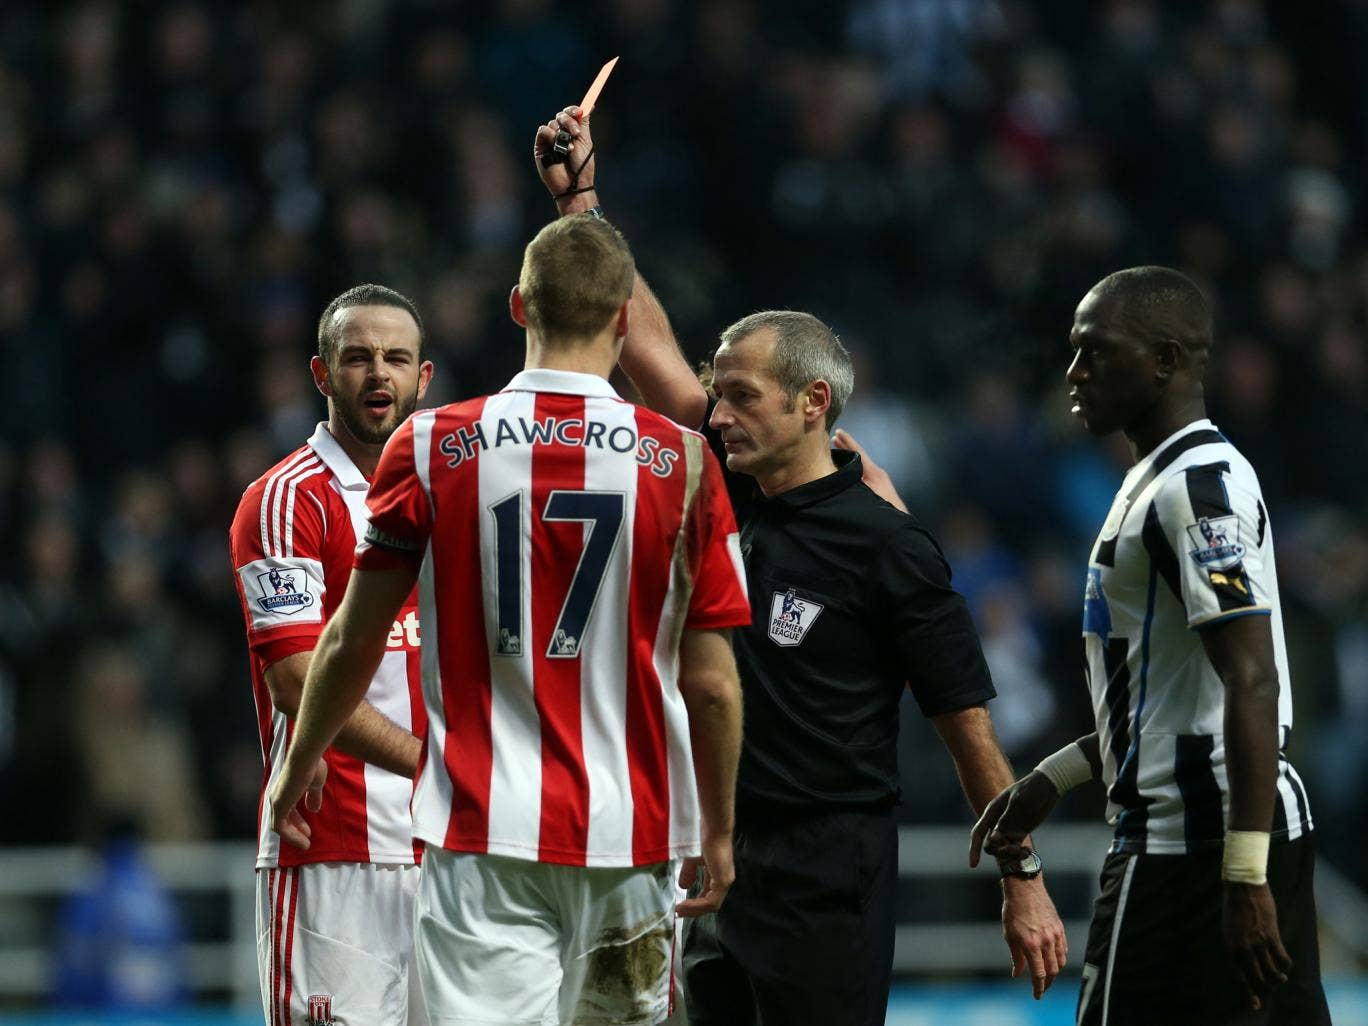 Stoke defender Marc Wilson is sent off after giving away a penalty in the 5-1 defeat to Newcastle on Boxing Day